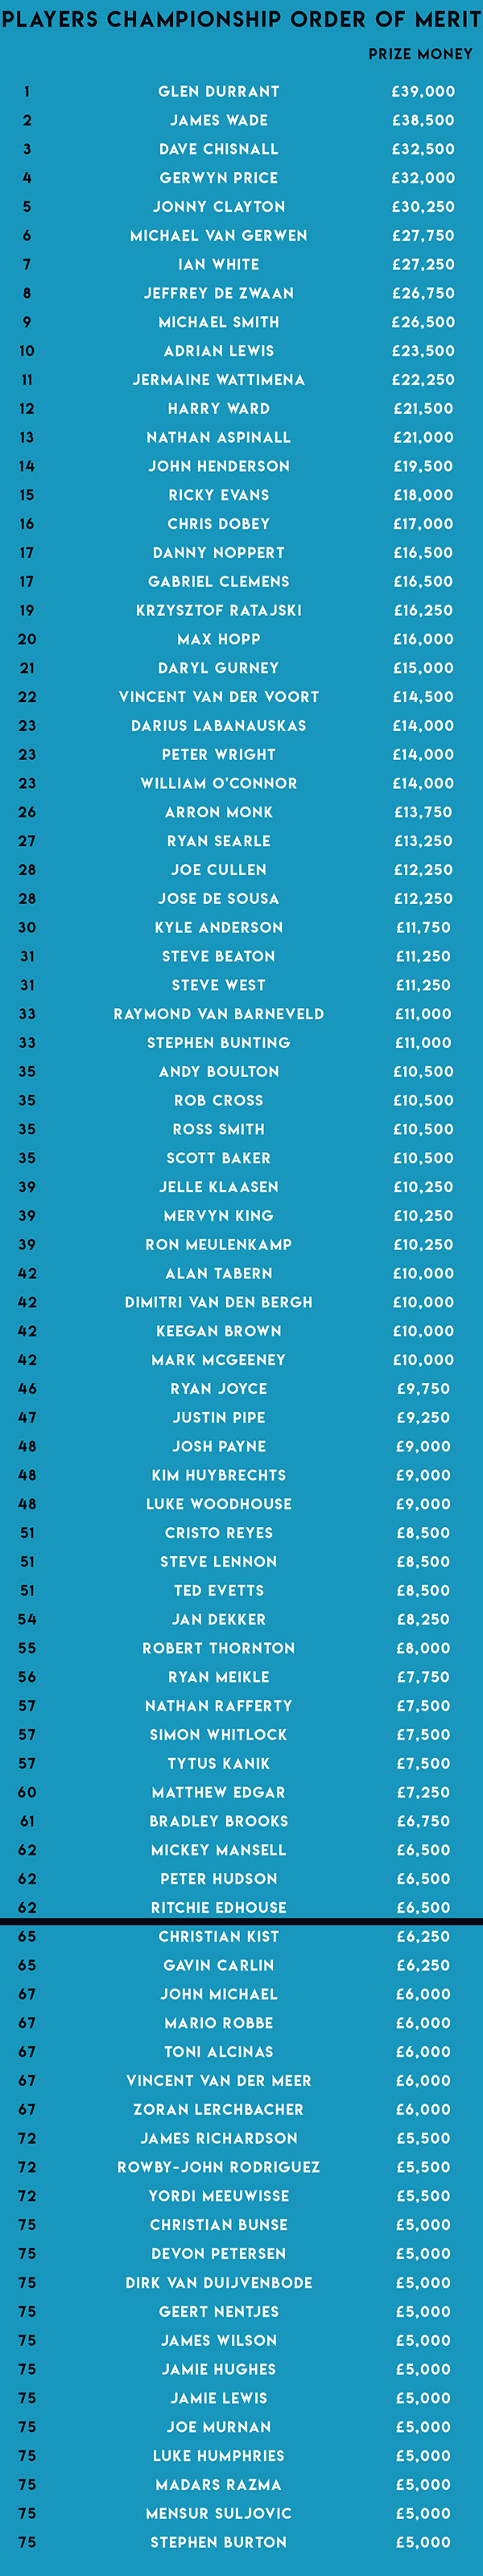 Players Championship Order of Merit (PDC)